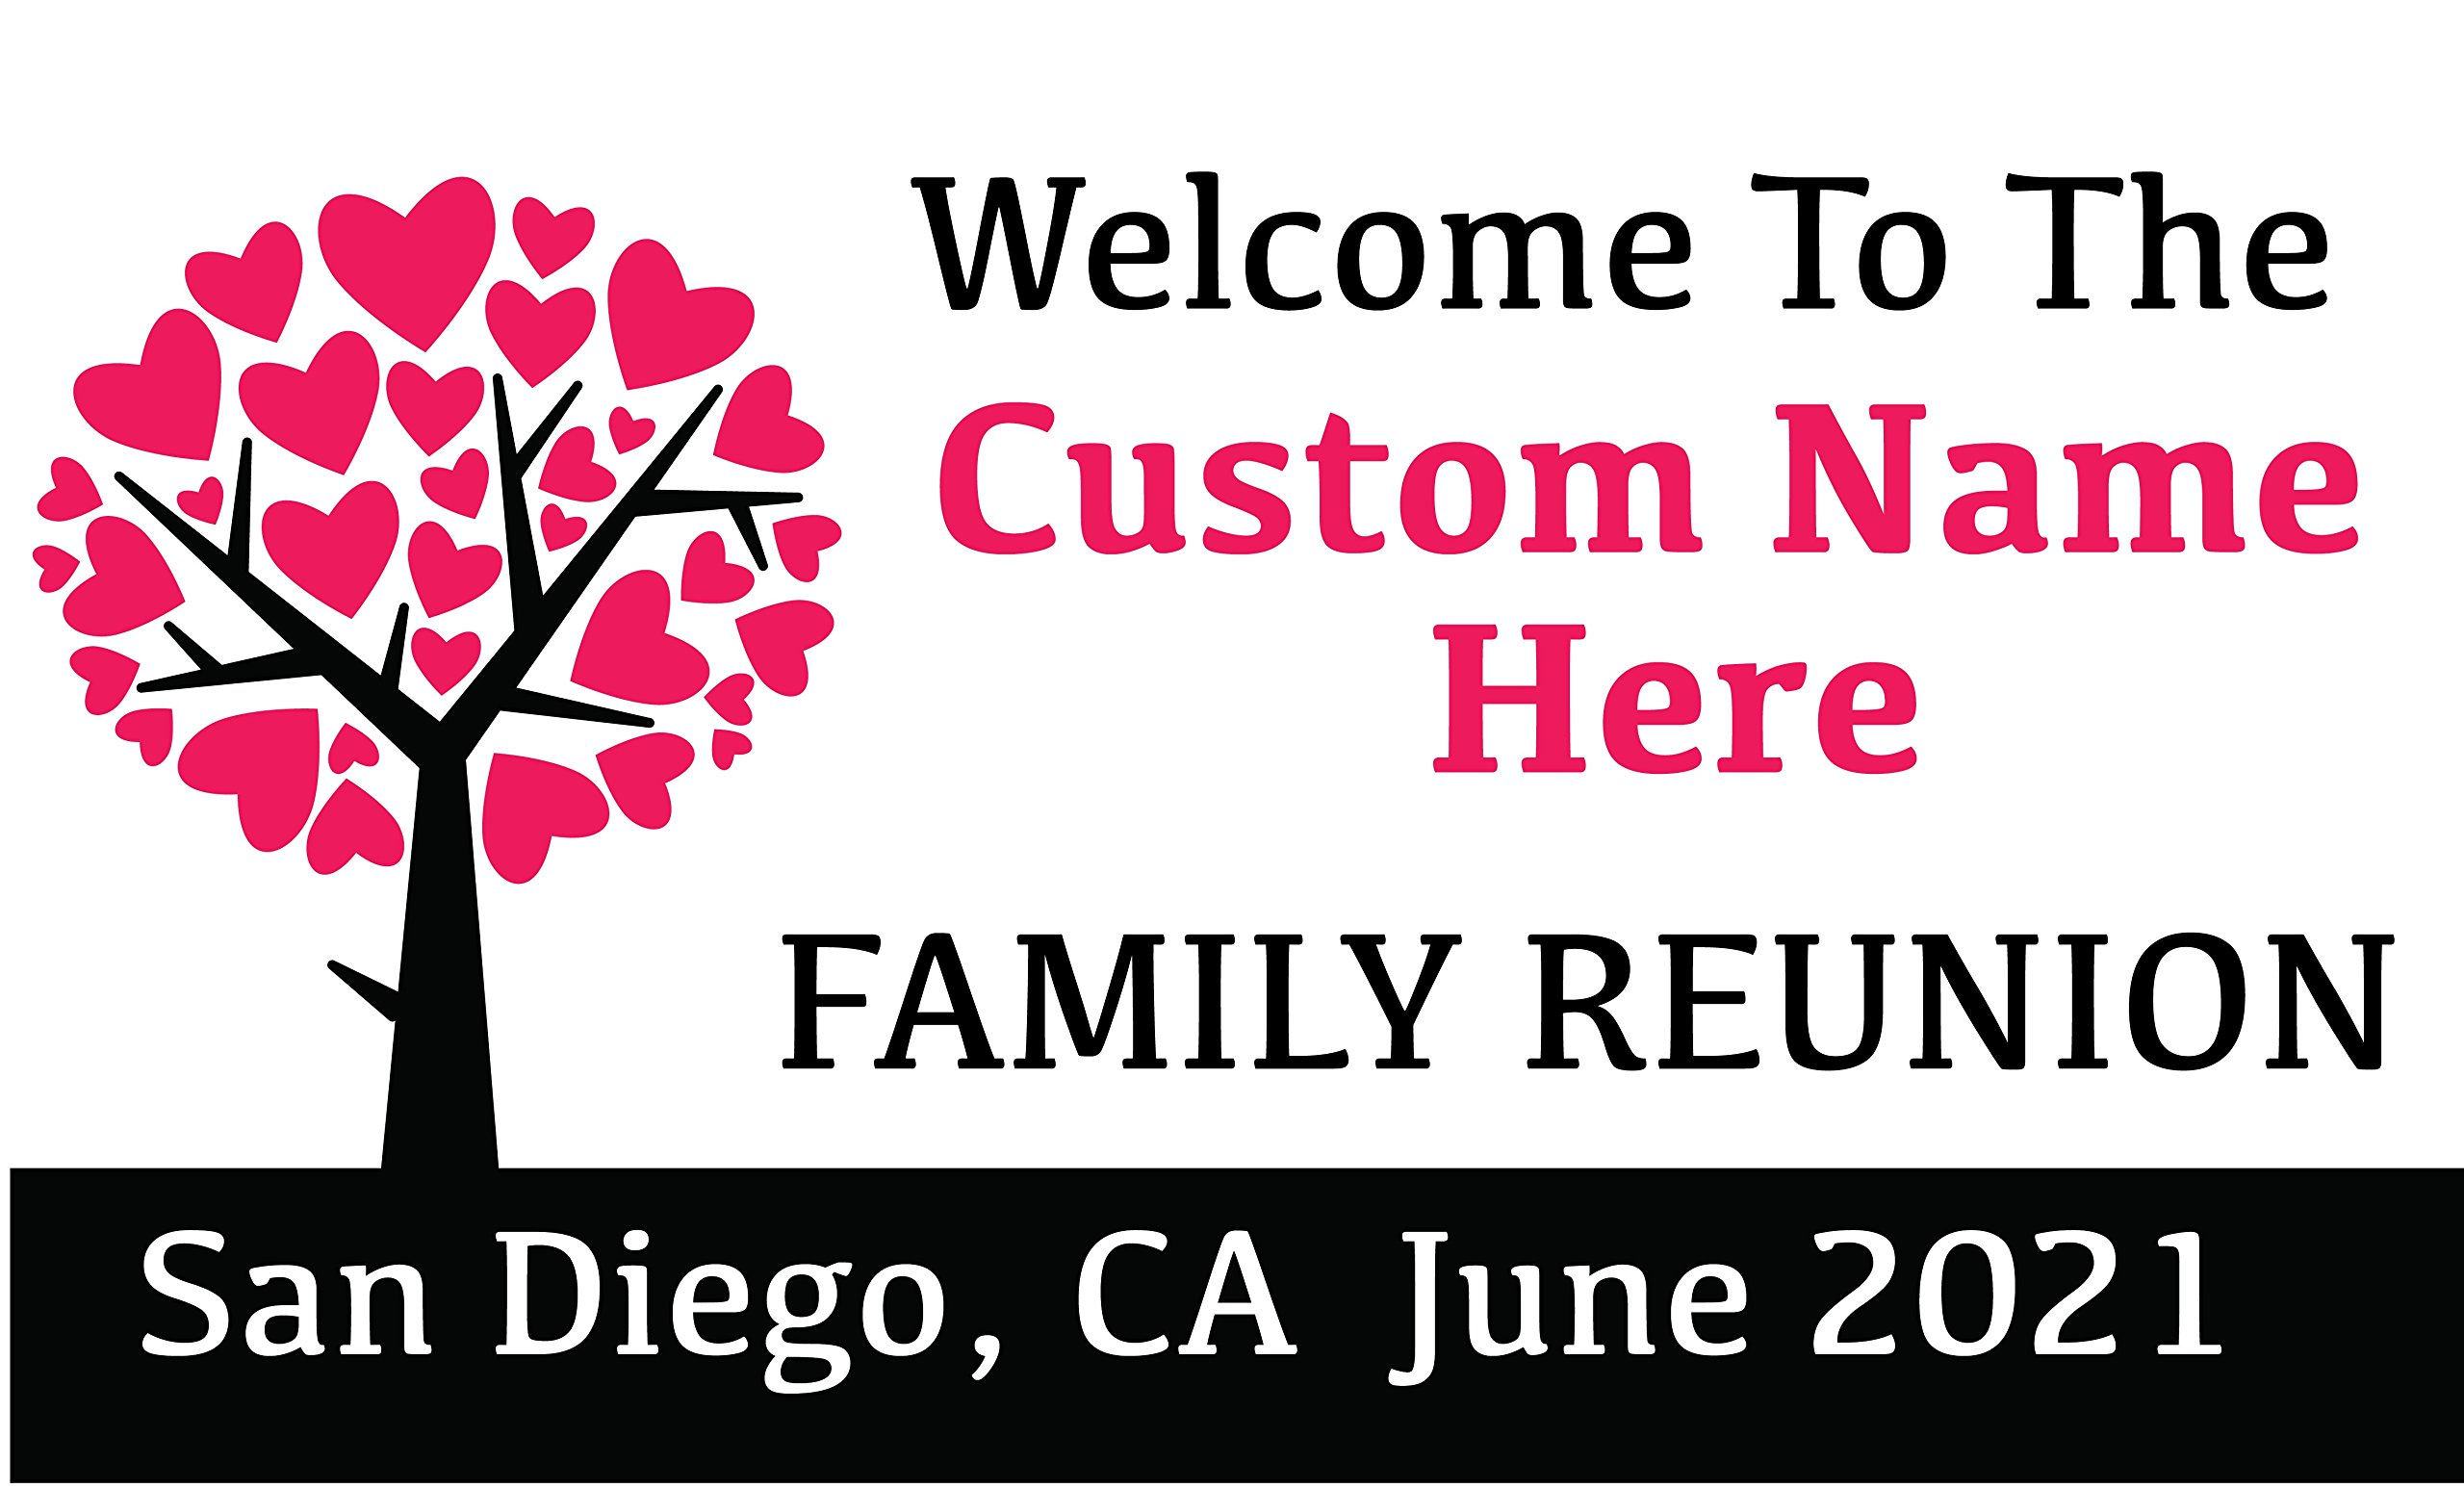 Family Reunion Custom Printed Banner - Tree Hearts Pink (10' x 5') by Reliable Banner Sign Supply & Printing